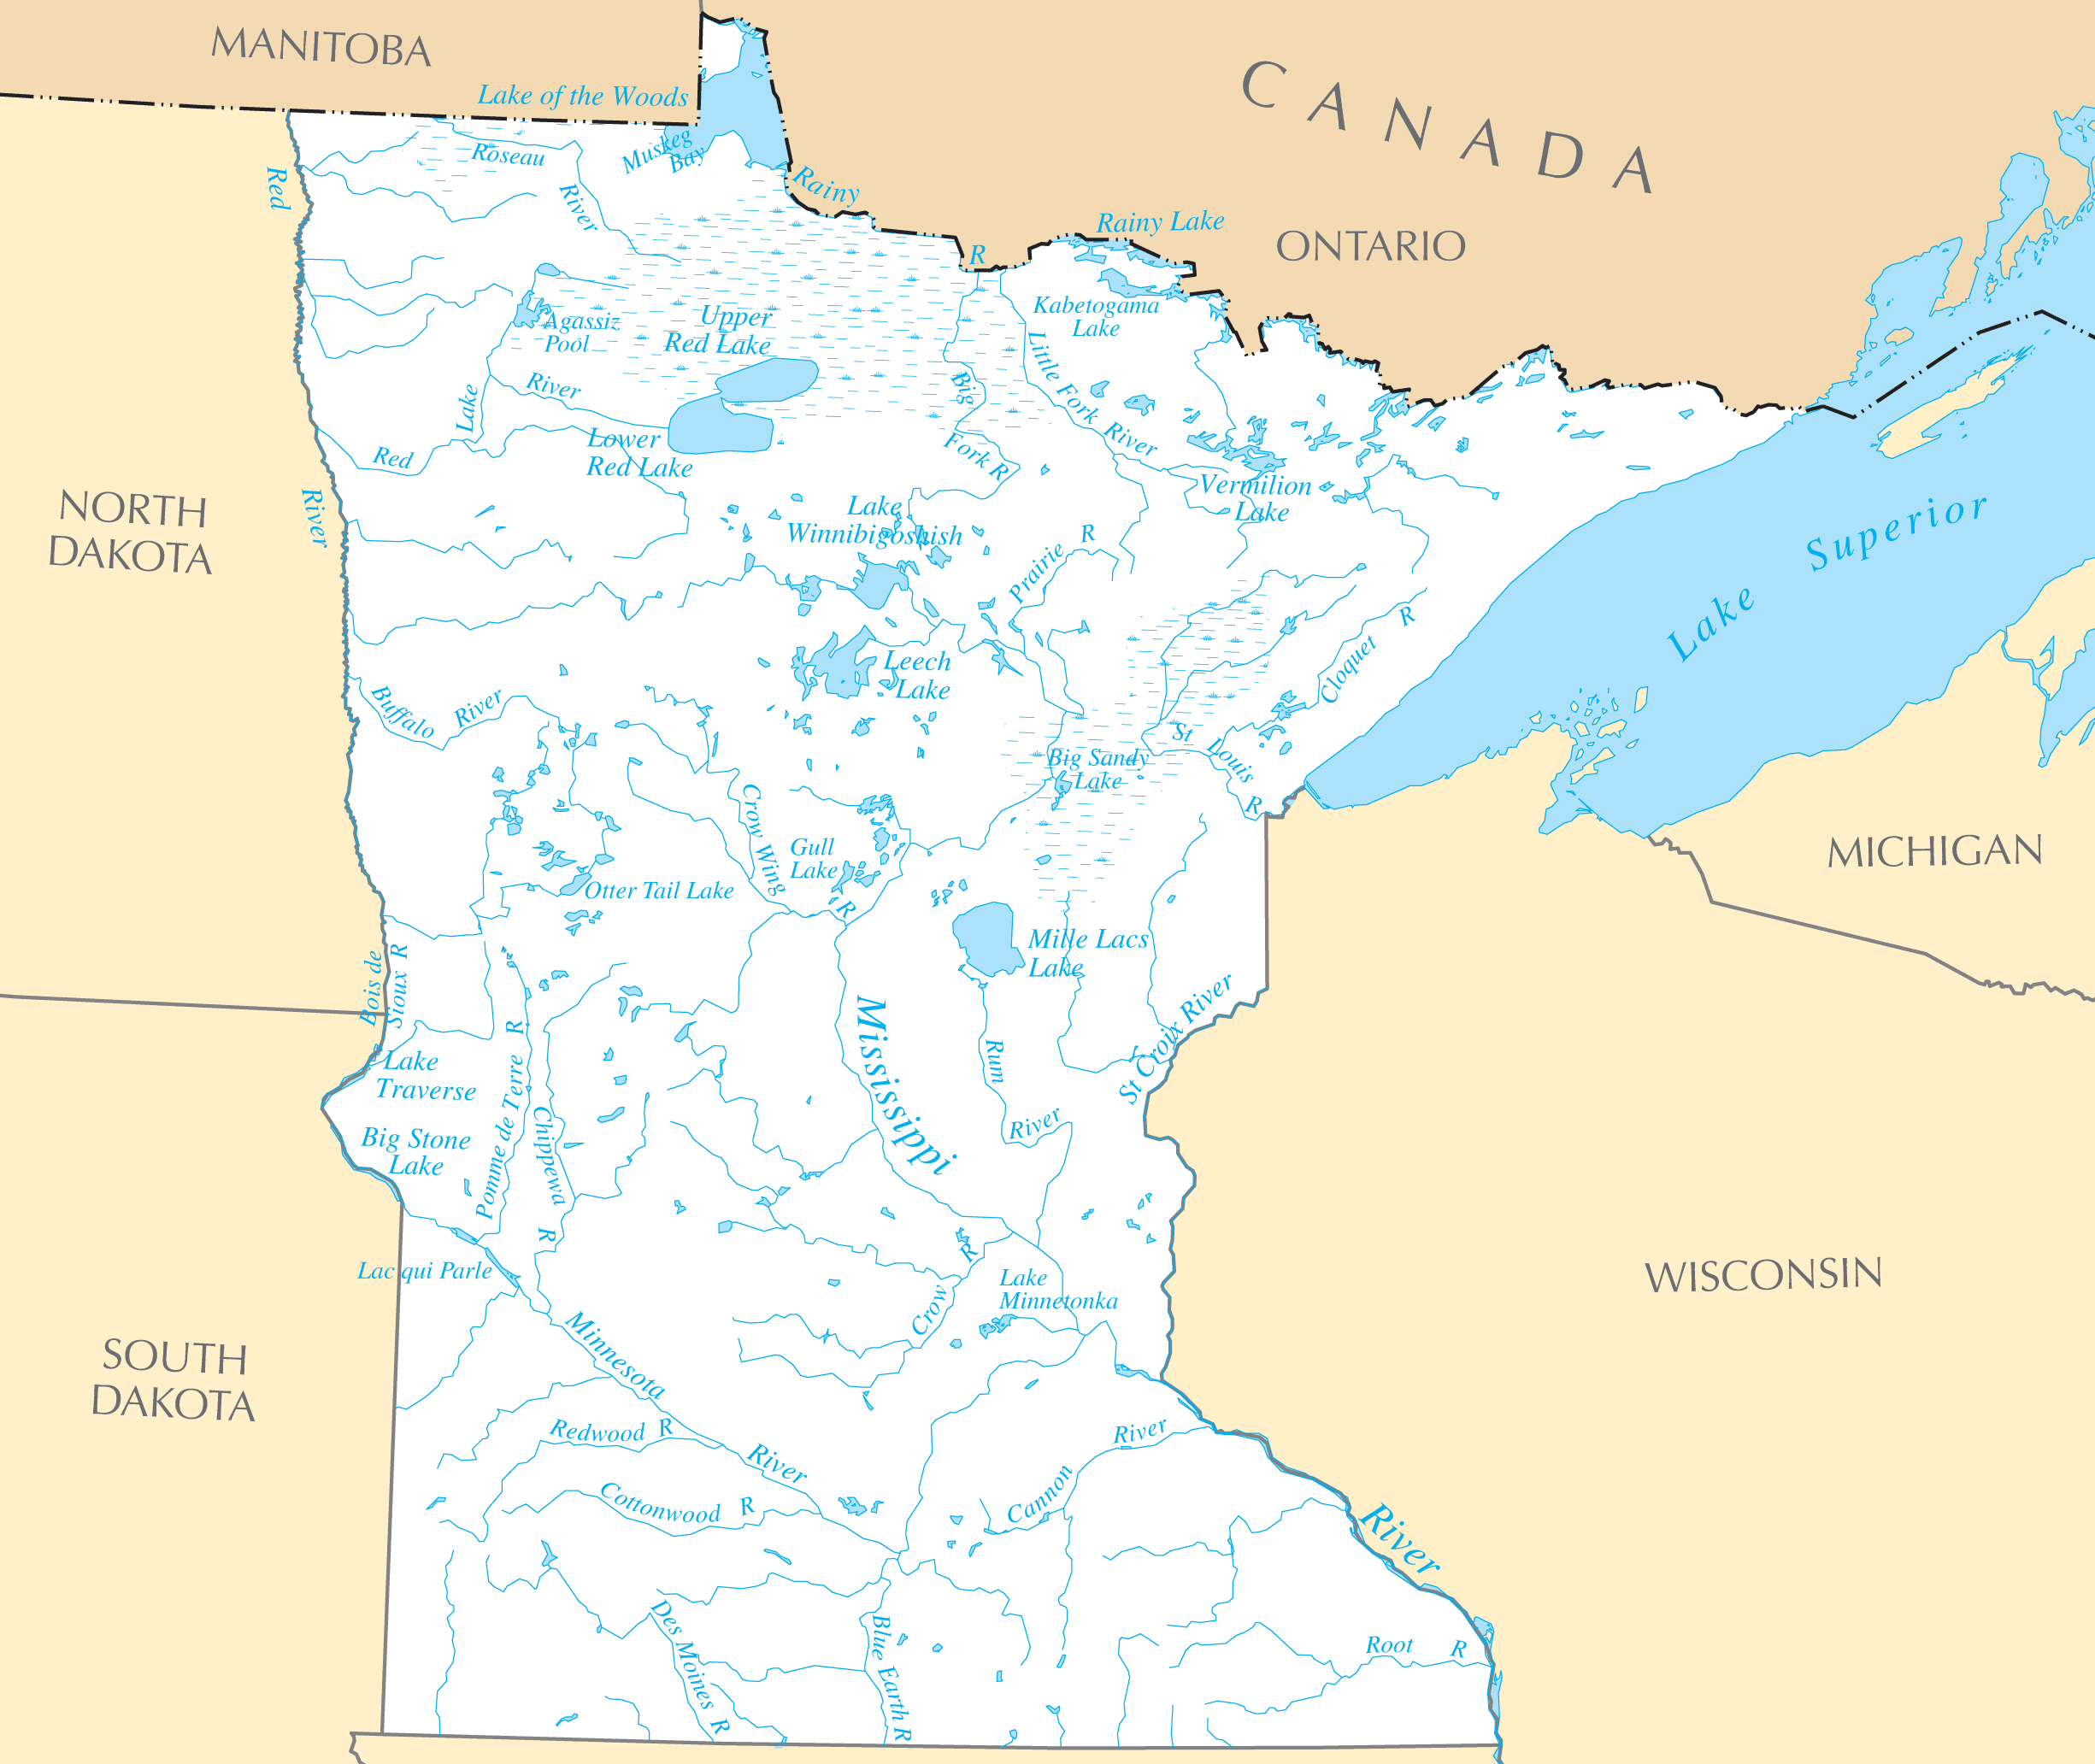 Minnesota Rivers And Lakes Mapsofnet - Minnesota rivers map